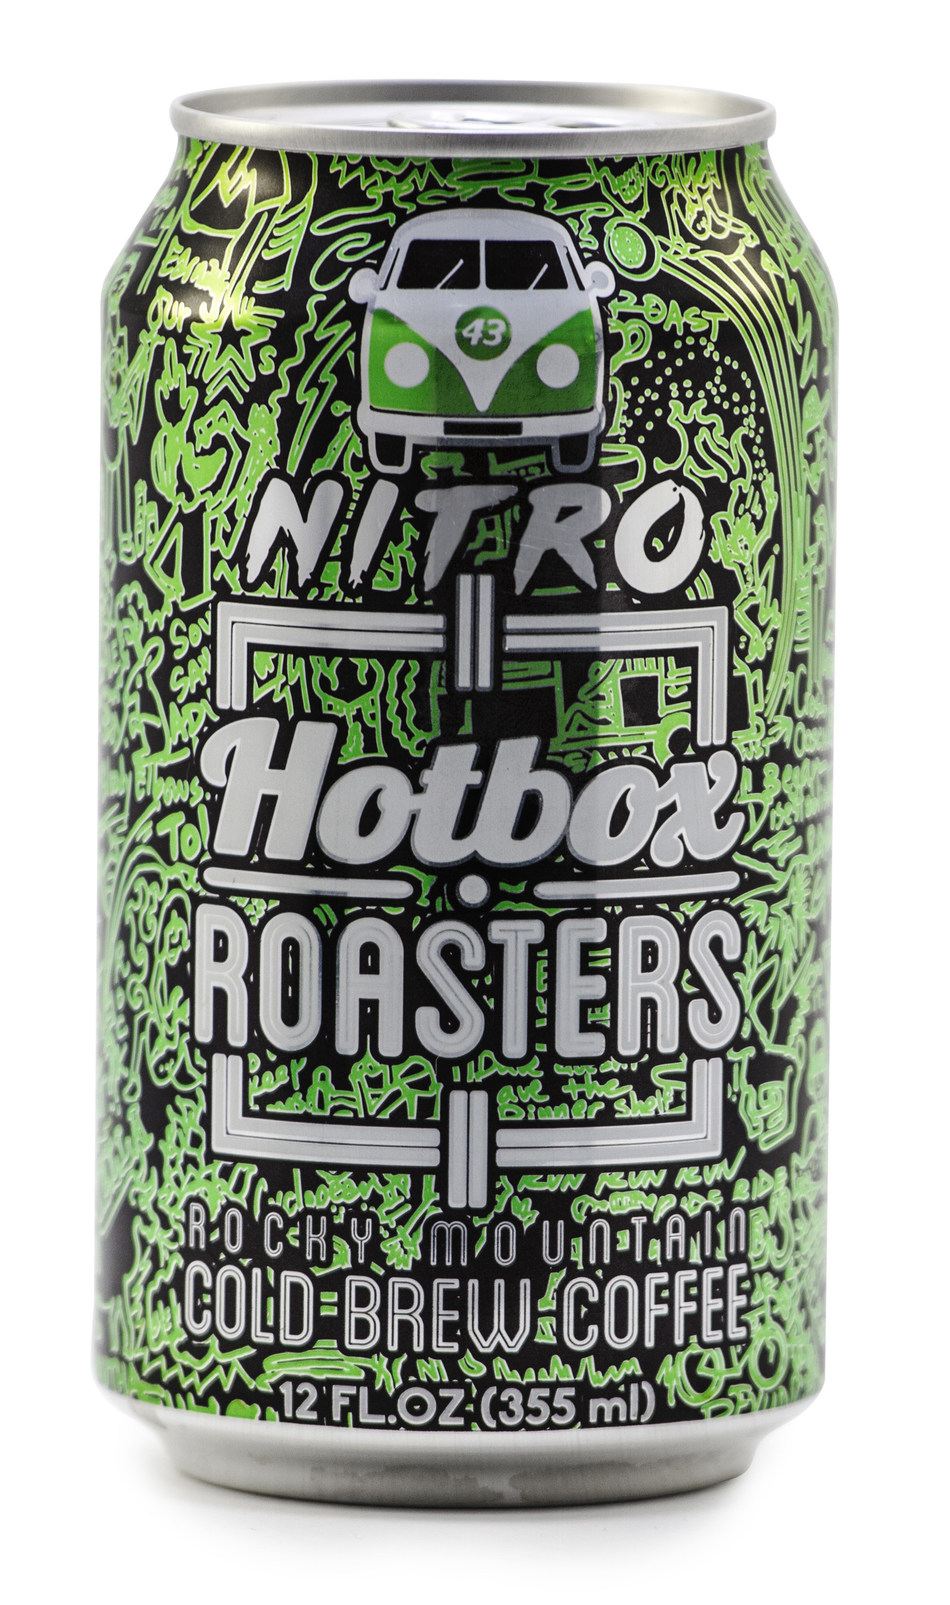 Hotbox Roasters' Nitro Cold Brew